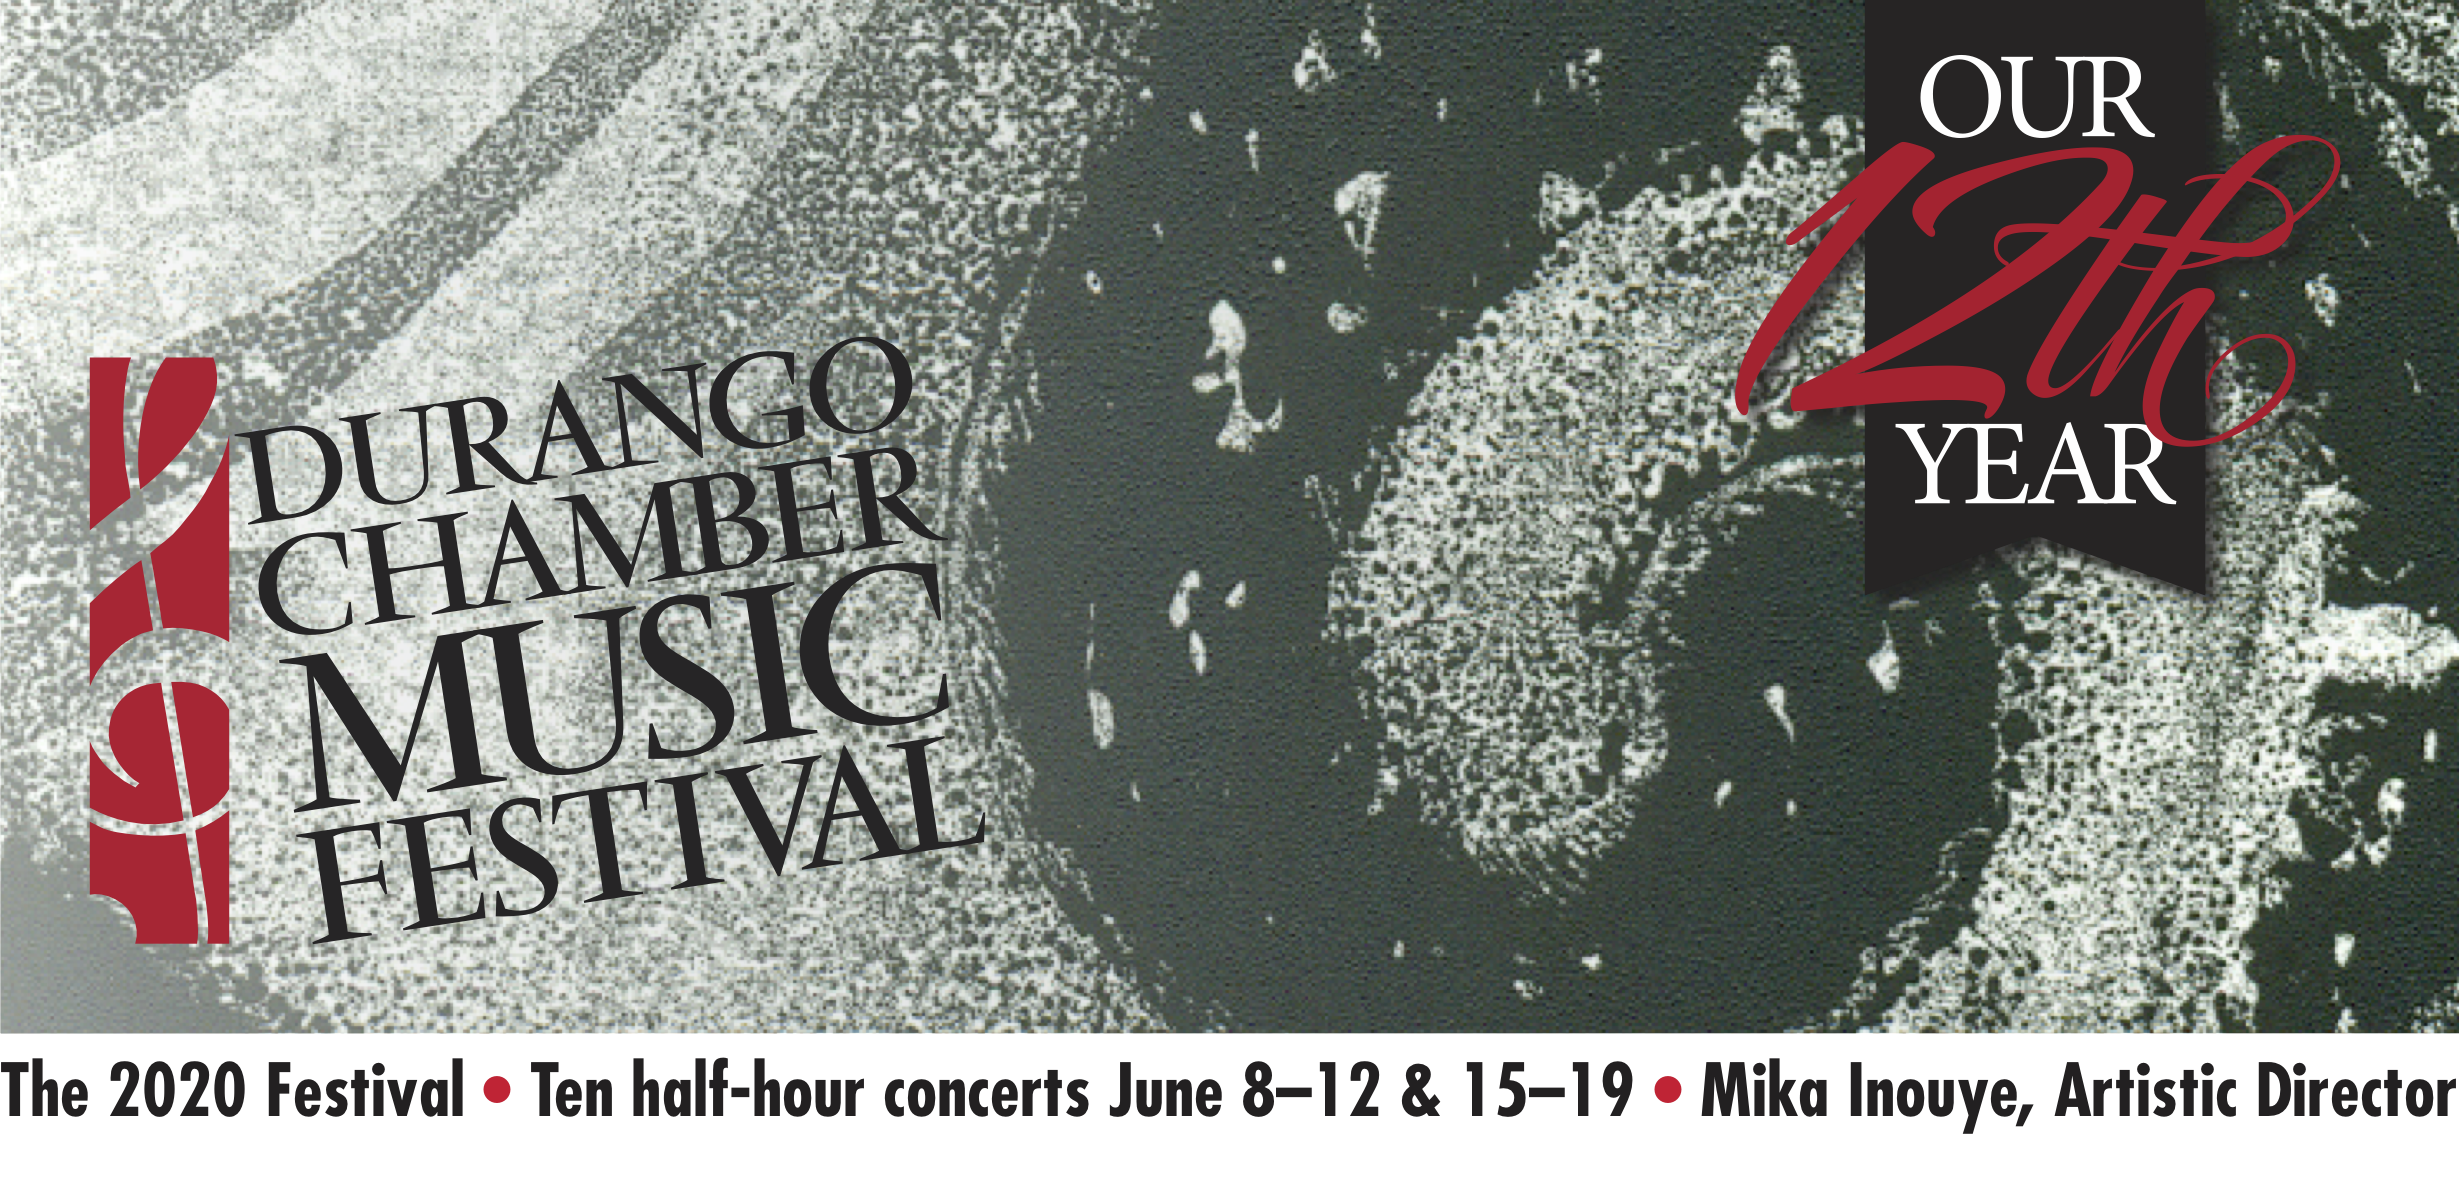 Durango Chamber Music Festival :: Ten half-hour concerts June 8-12 & 15-19, 2020